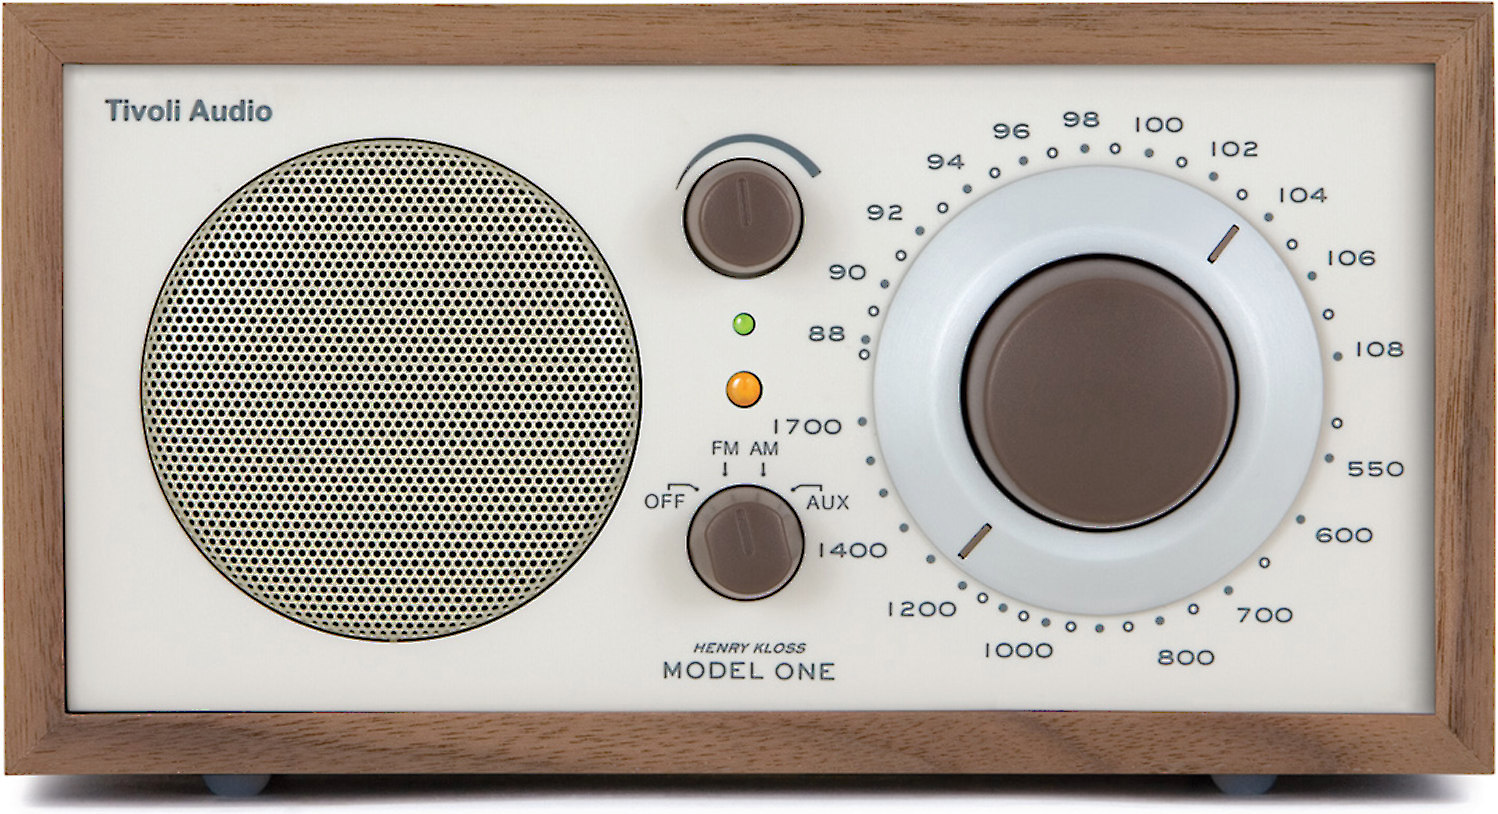 Tivoli Radio Sale Tivoli Audio Model One Walnut Beige